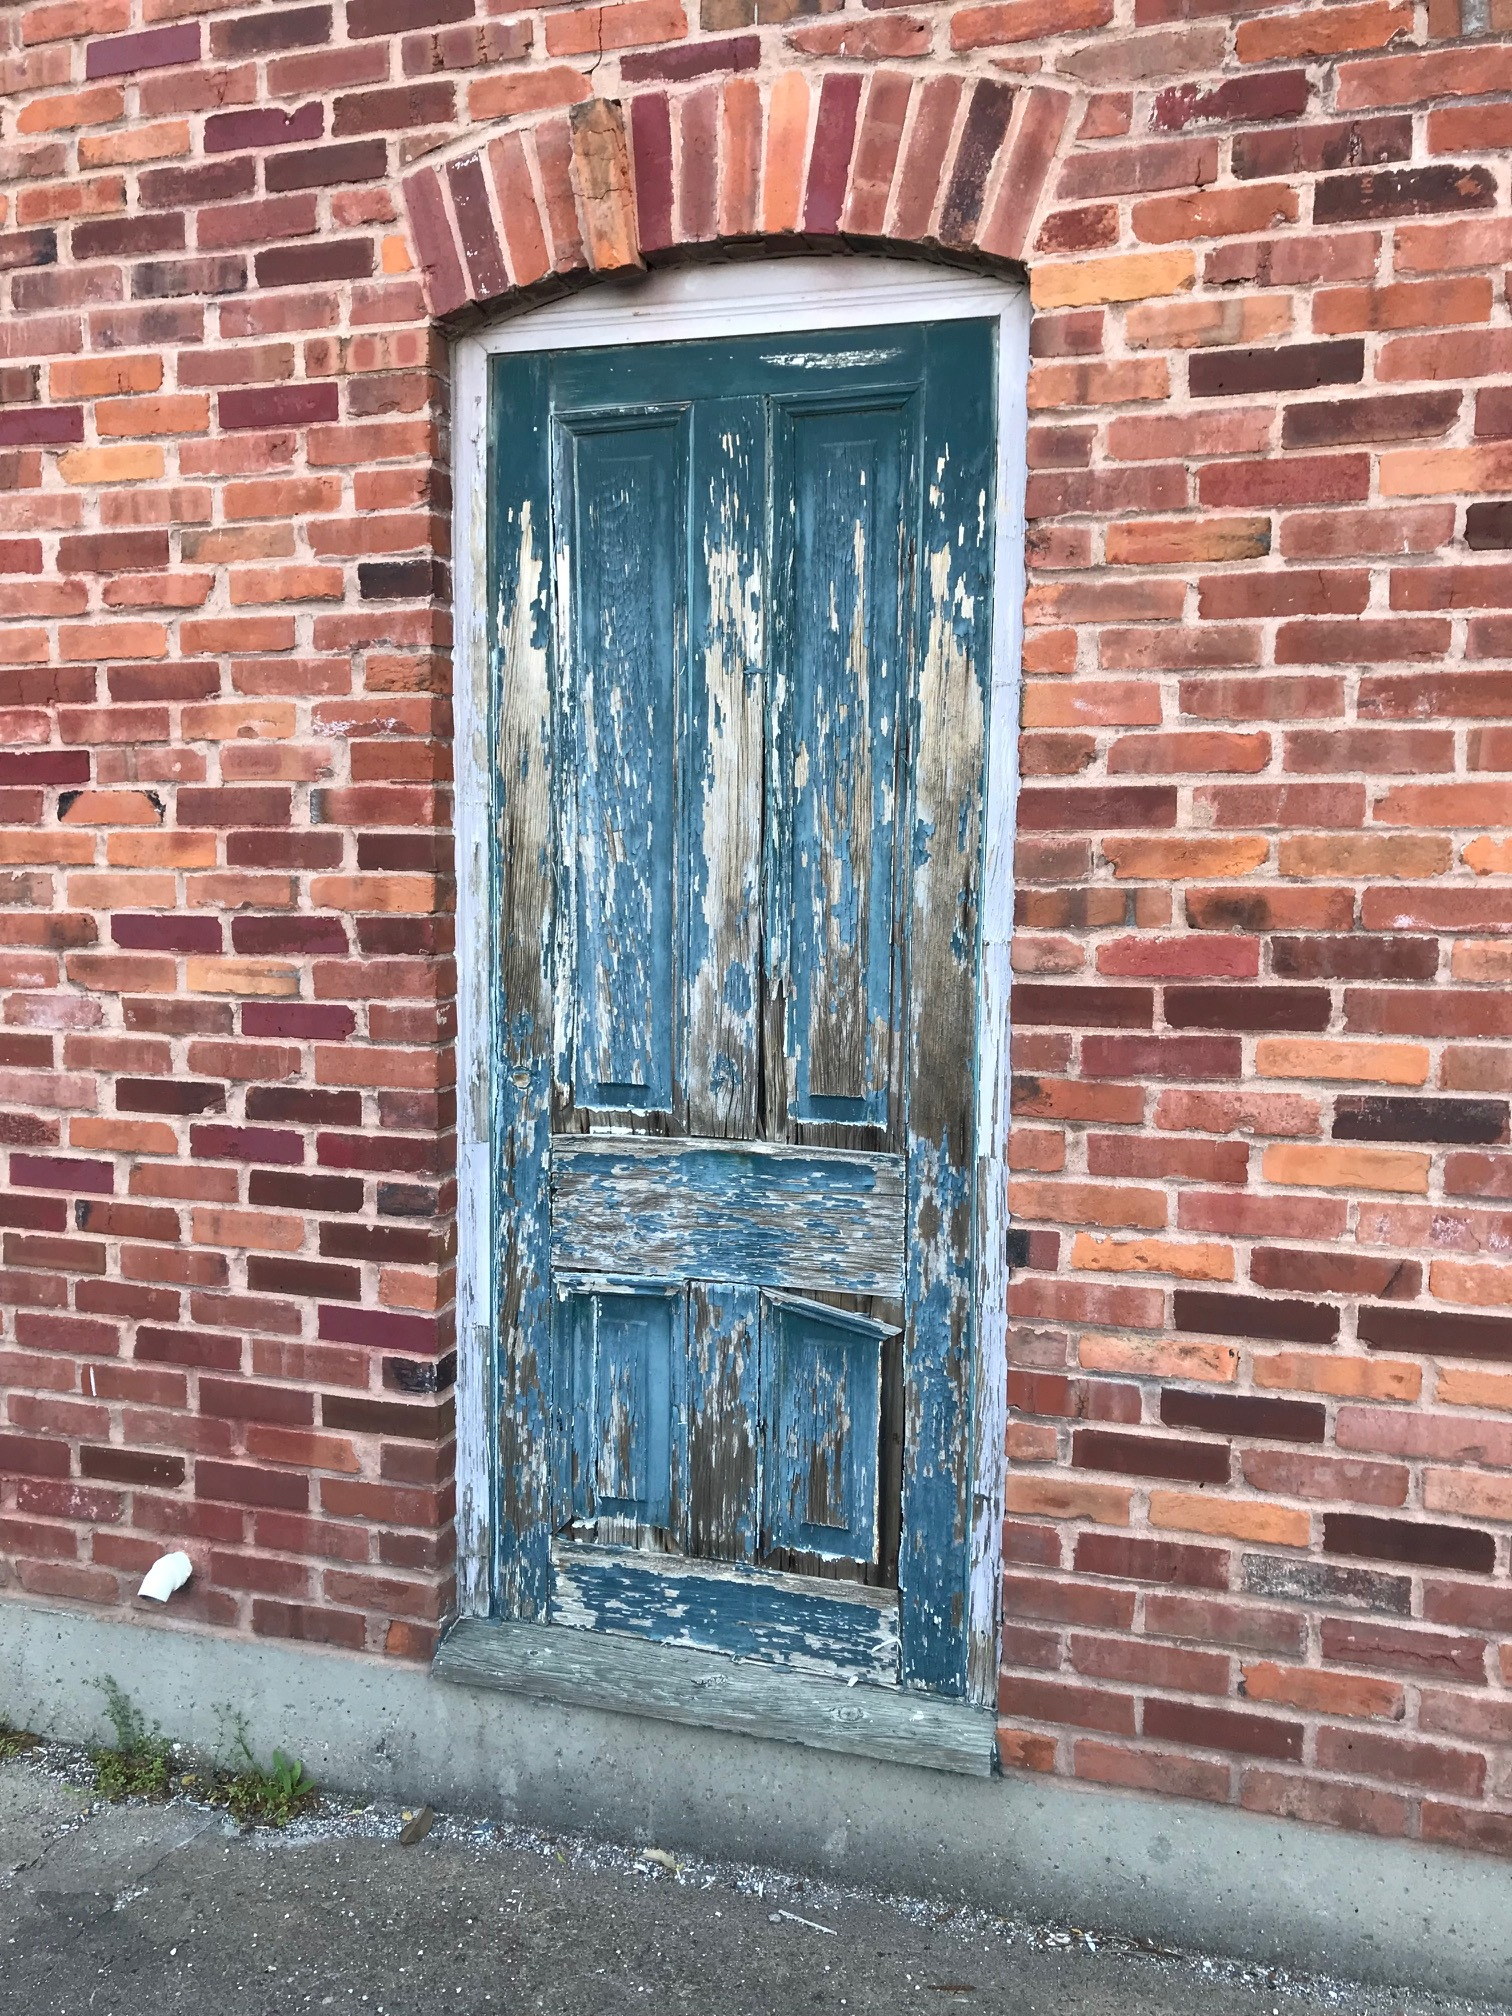 D'oh, more entropy! Here is the deteriorating dummy door of our carriage house. Harsh environment, to be sure. Failed caulk and paint, cracked wood, and this was just painted (again!) like five years ago. So, do I repair—again---or replace? And what's with the loose brick?!